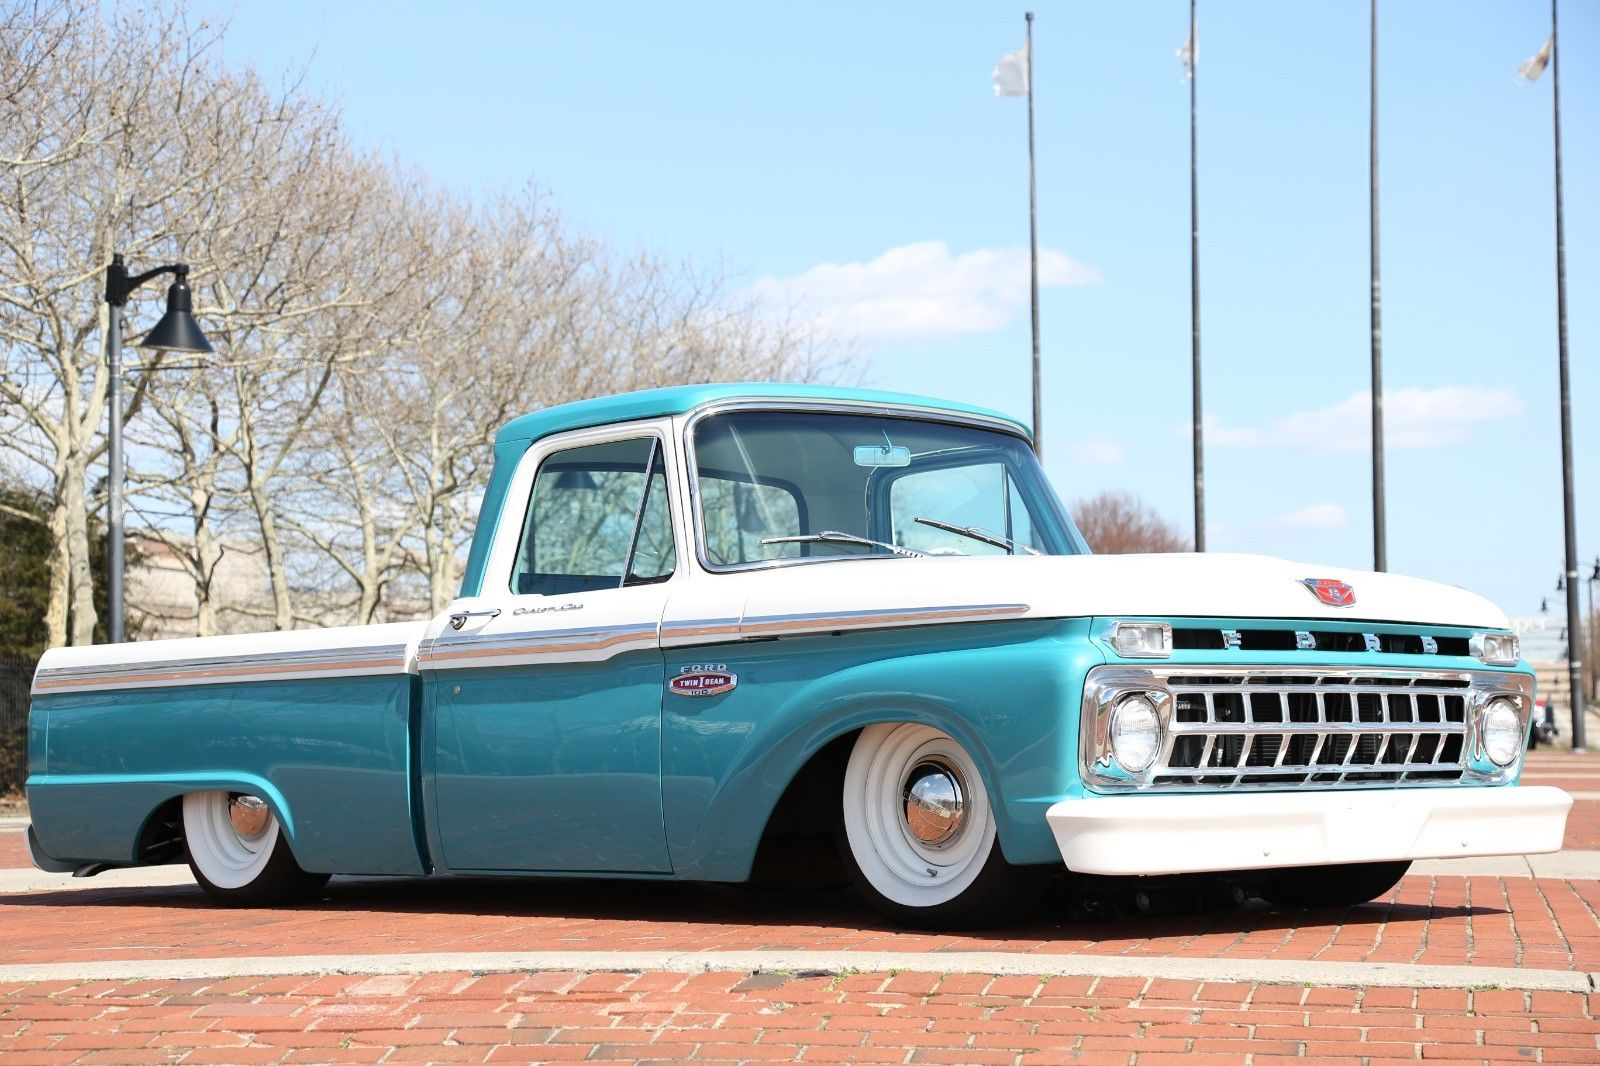 For Sale Ford F 100 With A Ls2 V8 Engine Swap Depot Wiring Harness Ebay This 1965 Is On In Woodbury New Jersey Current Bid Of 55050 The Truck Took Three Years To Build And Only Has 150 Miles